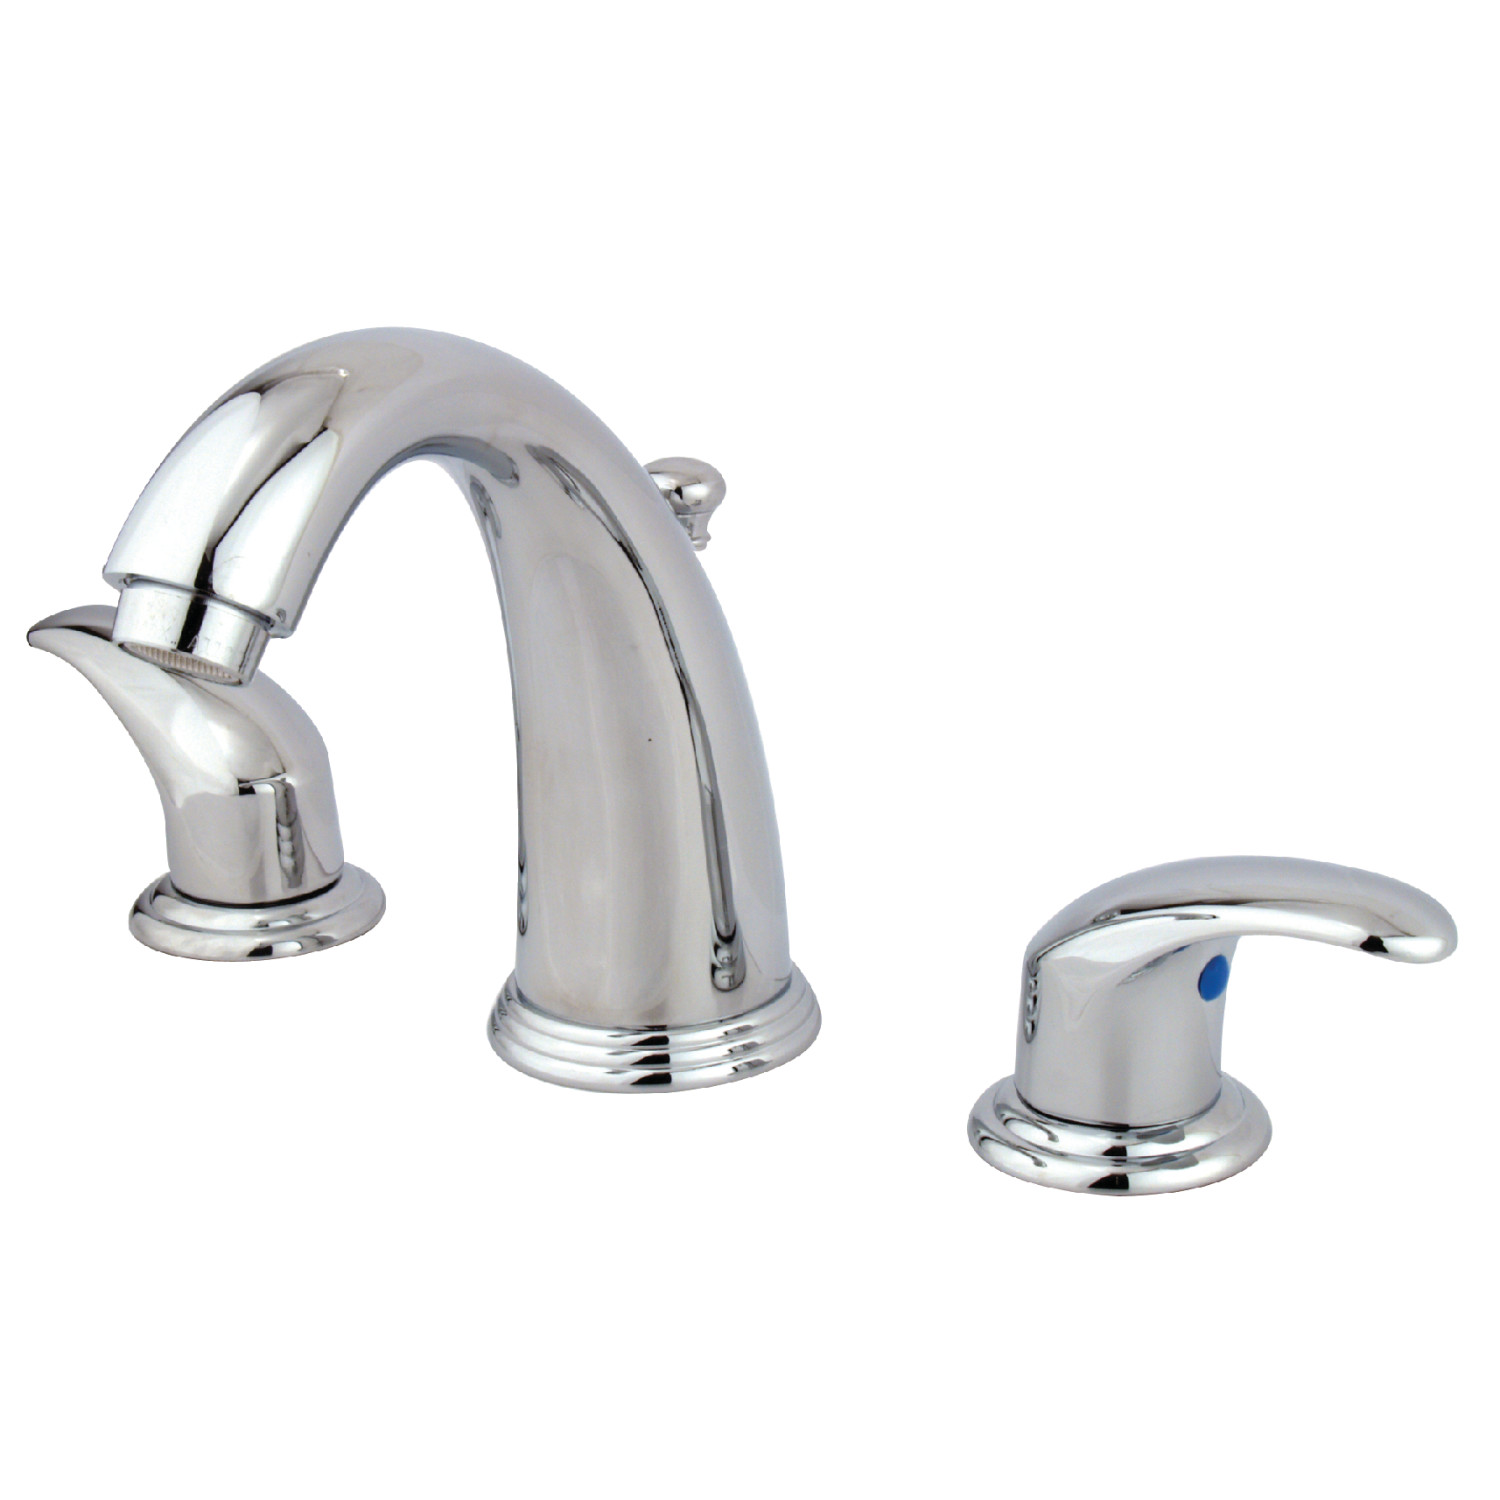 Traditional Two-Handle 3-Hole Deck Mounted Widespread Bathroom Faucet with Plastic Pop-Up in Polished Chrome with 4 Color Options